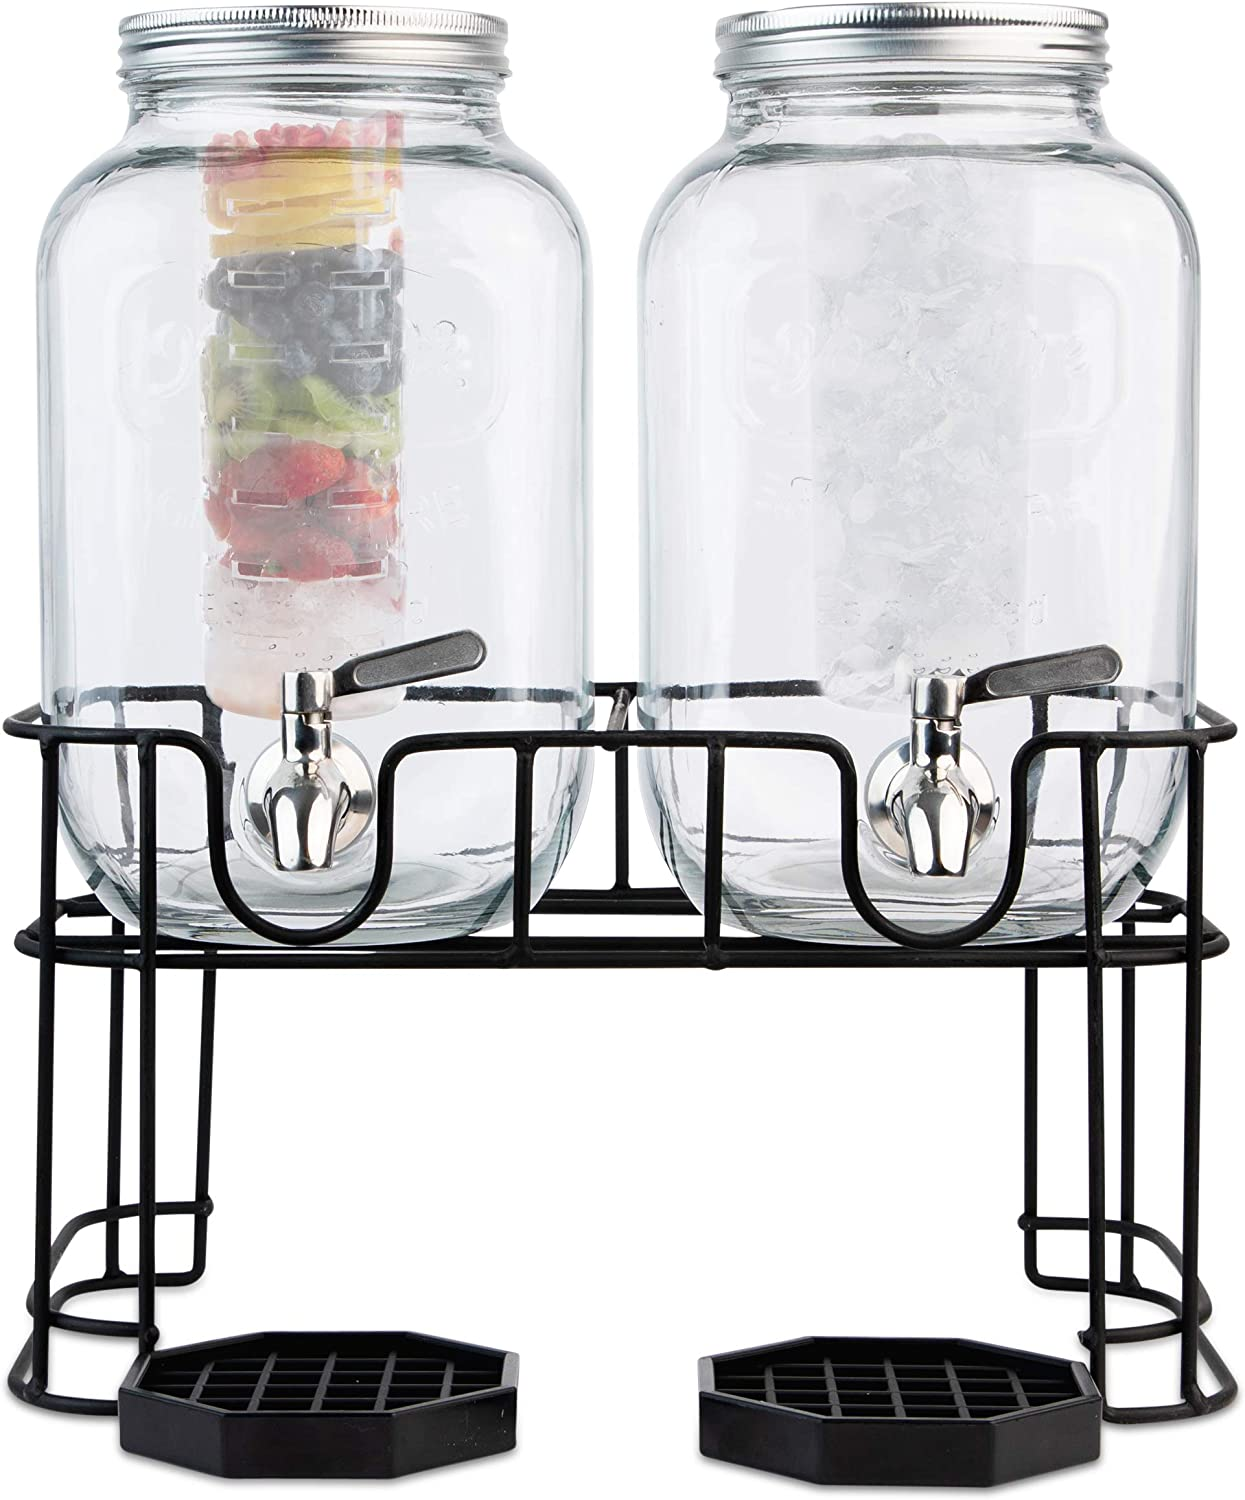 Dual Gallon Glass Beverage Dispensers with 2 Sets of Fruit & Ice Infuser Inserts - Metal Stand, Stainless Steel Spigot, Metal Lids and Drip Trays Yorkshire Mason Dual Drink Dispenser Display